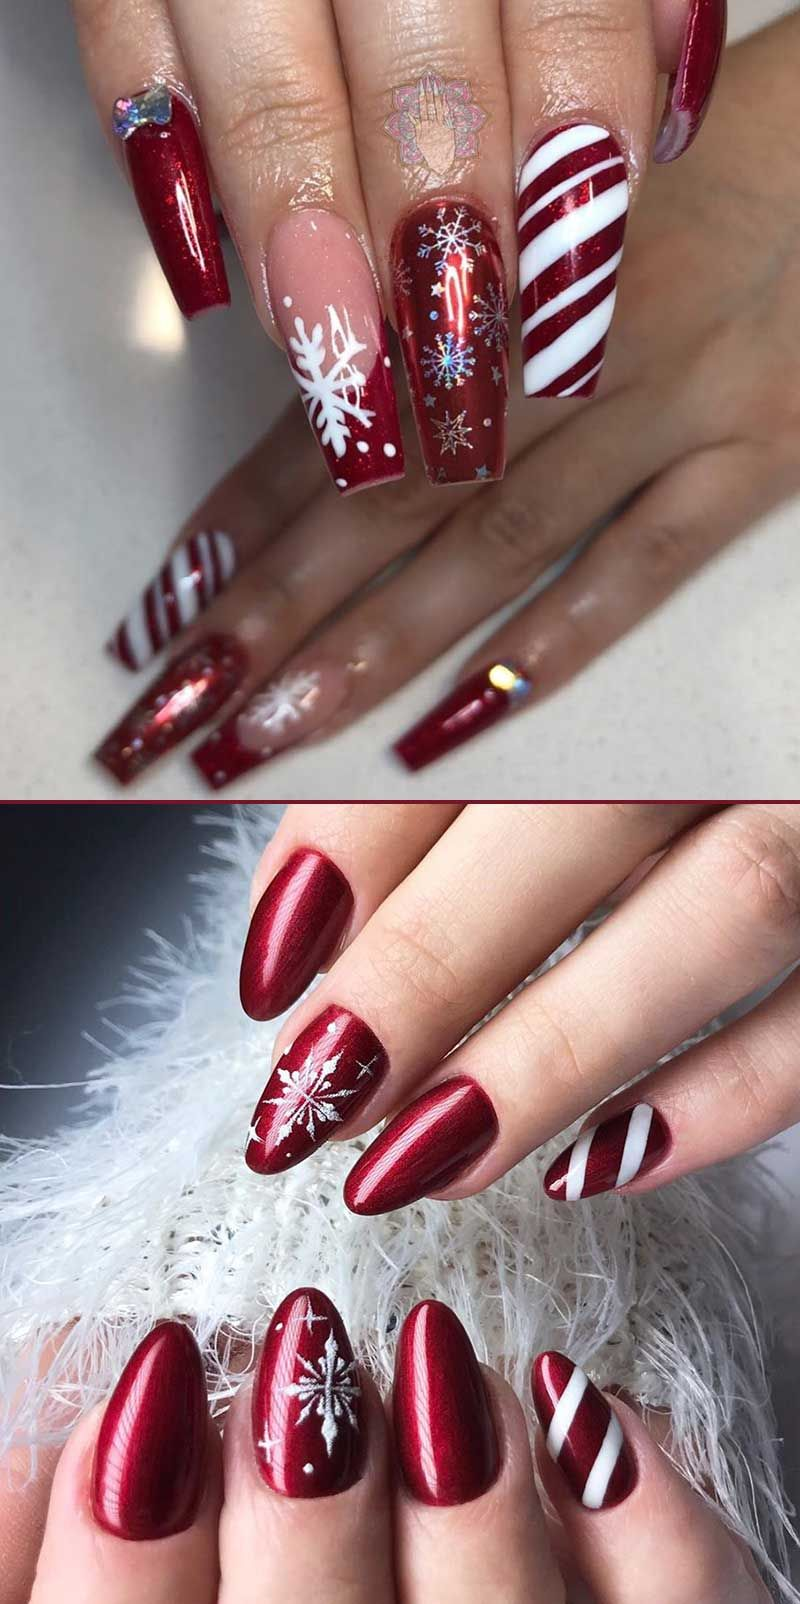 Amazing Dark Red Snowflake Nails Ideas For Christmas Celebration Red Christmas Nails Dark Red Nails Christmas Nails